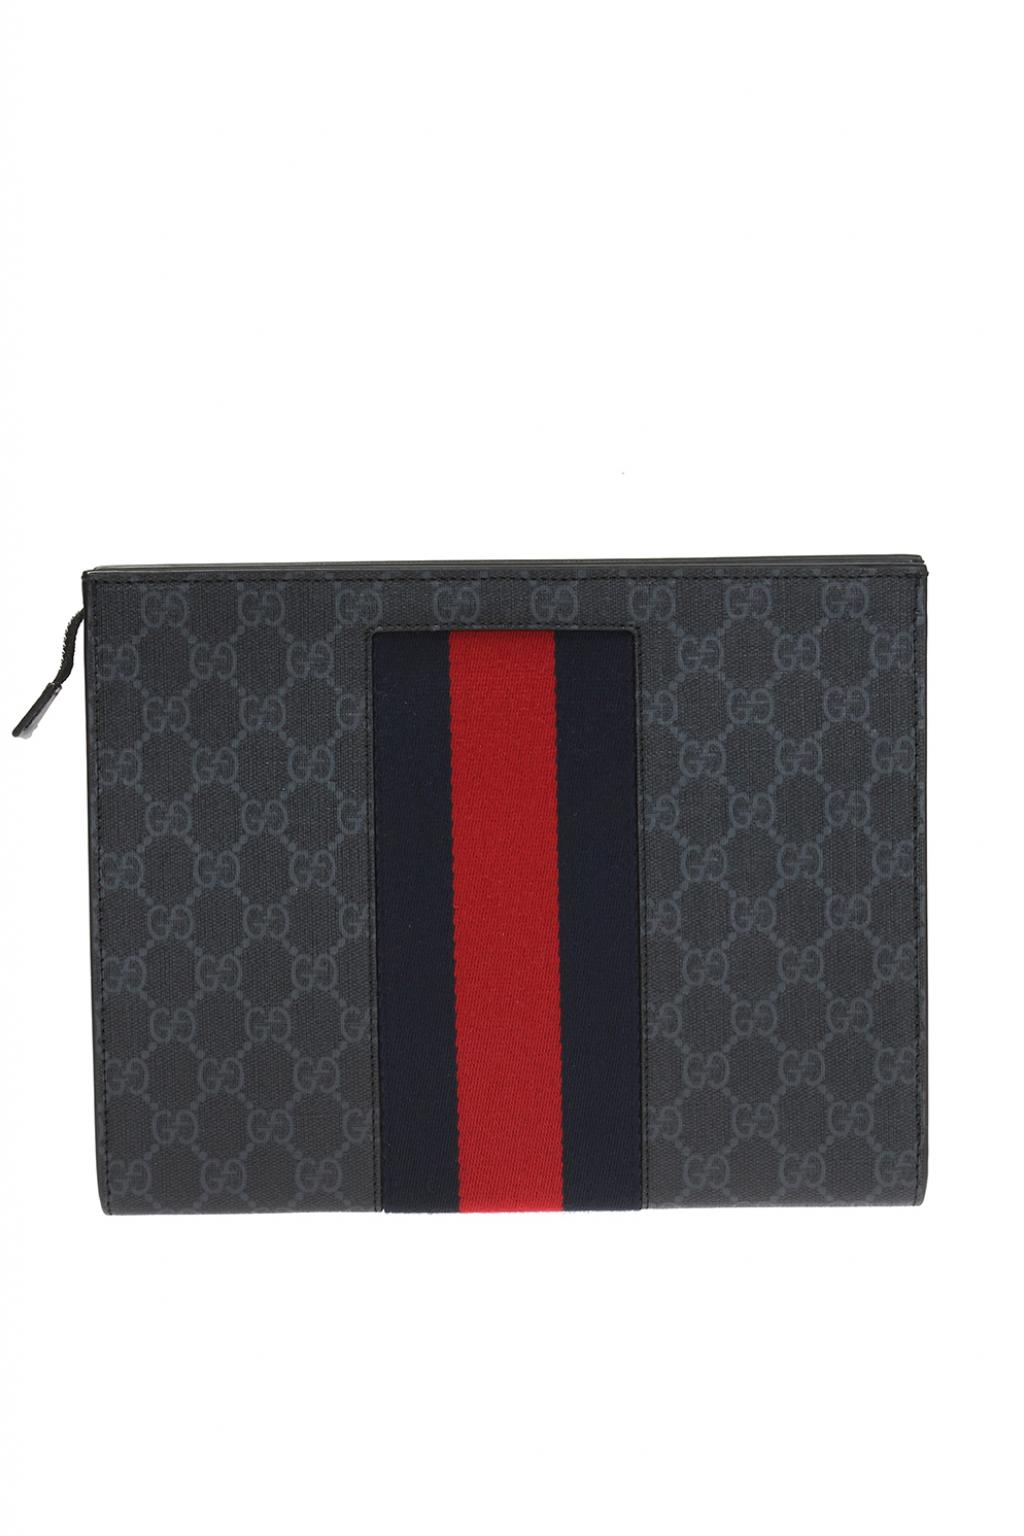 Gucci Cosmetics bag with logo